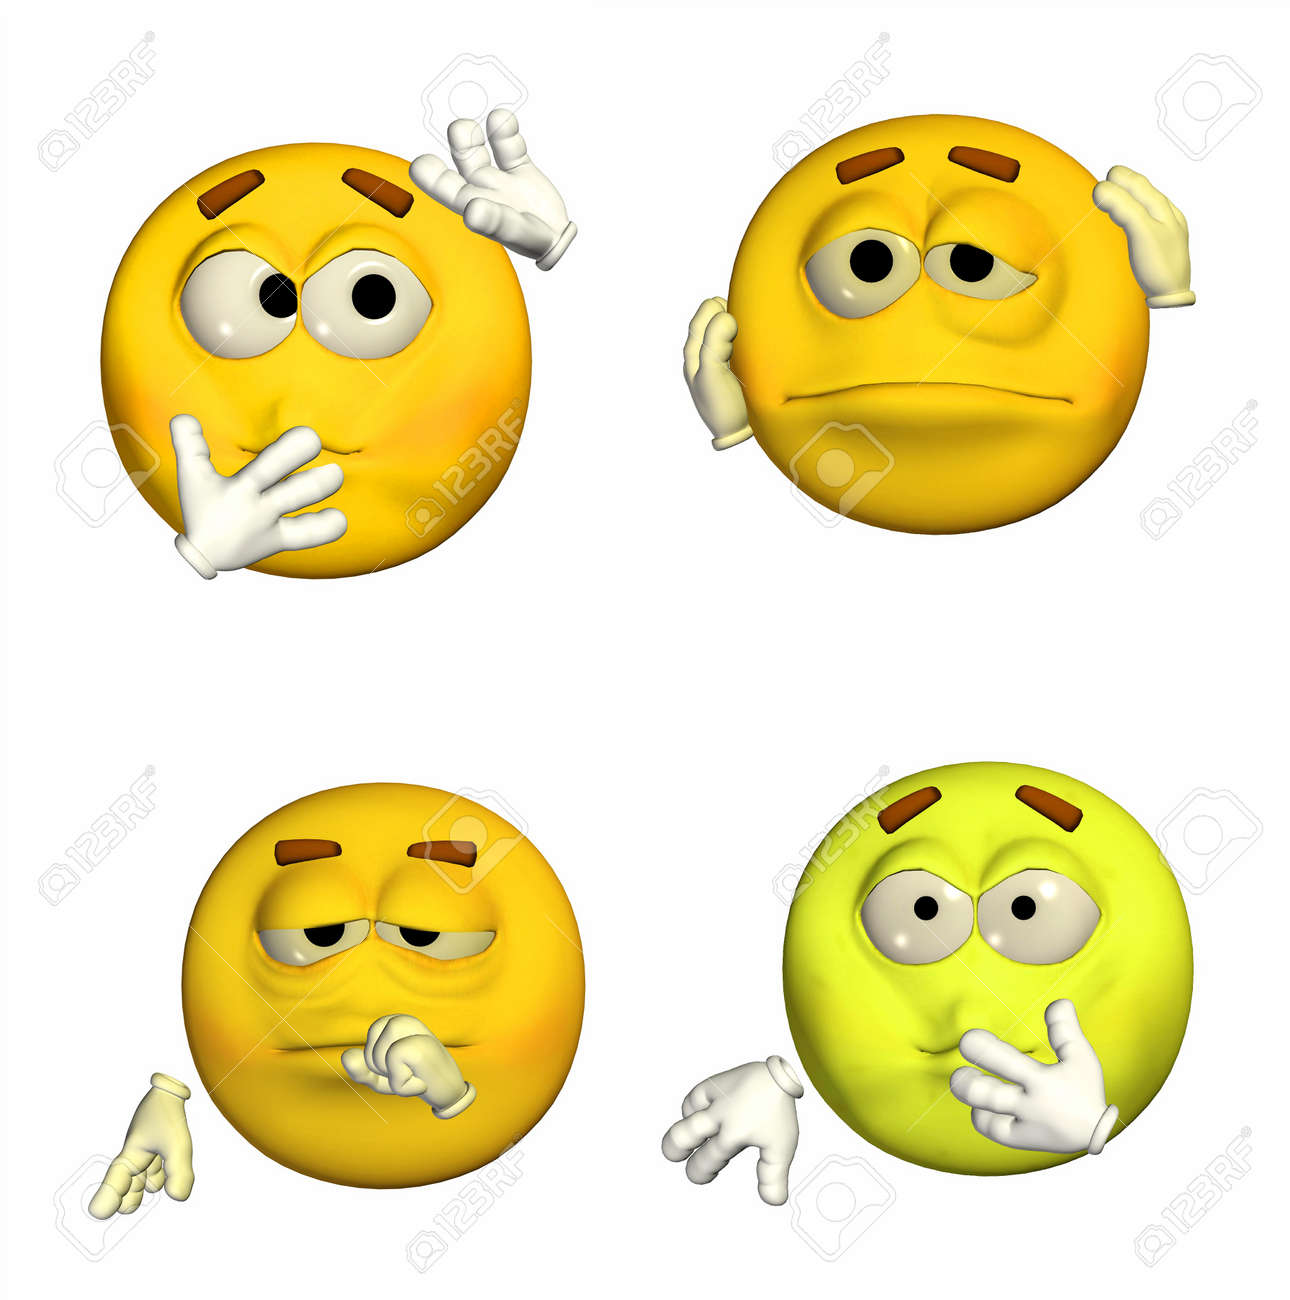 Illustration of a pack of four  4  emoticons   smileys with different poses and expressions isolated on a white background Stock Photo - 13504850